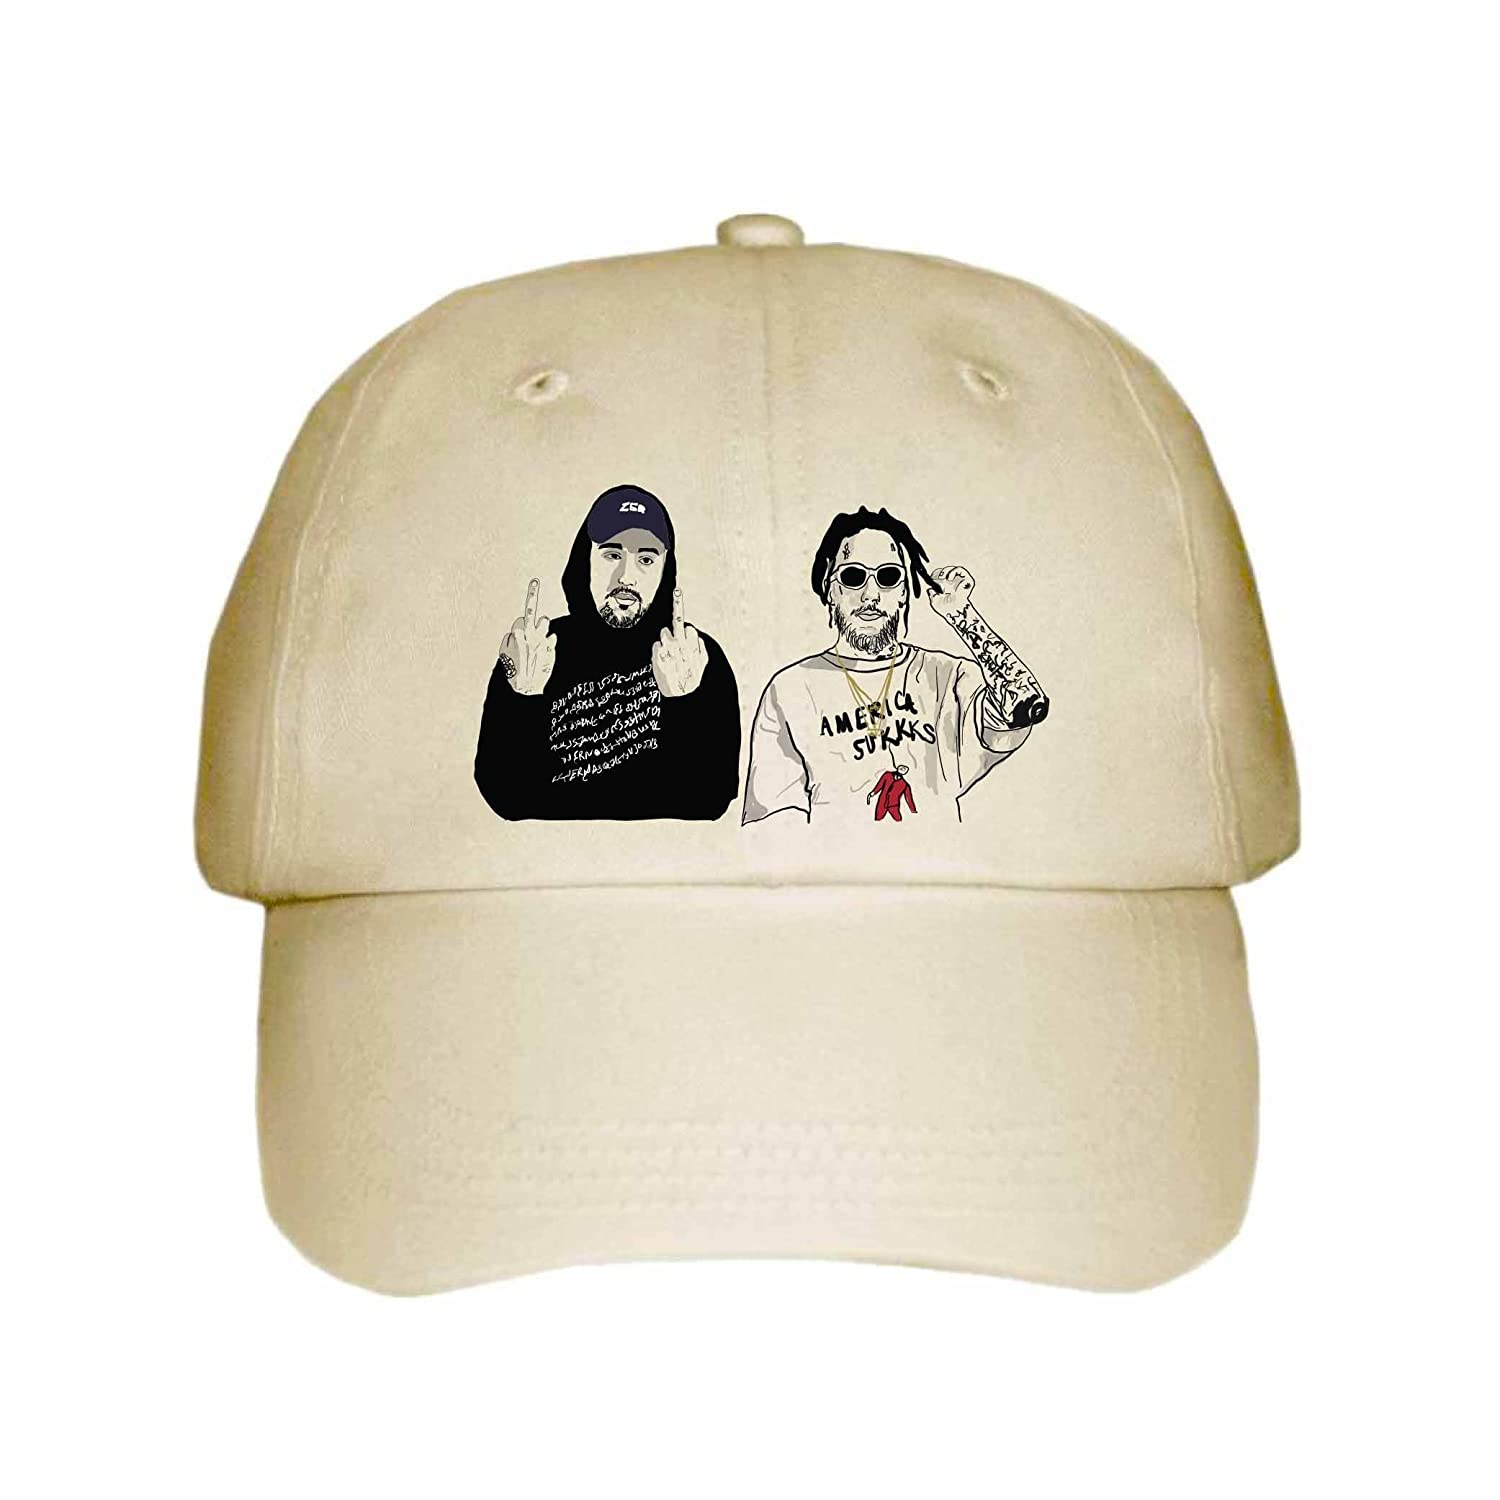 $uicideboy$ Suicide Boys Cap/Hat (Unisex)